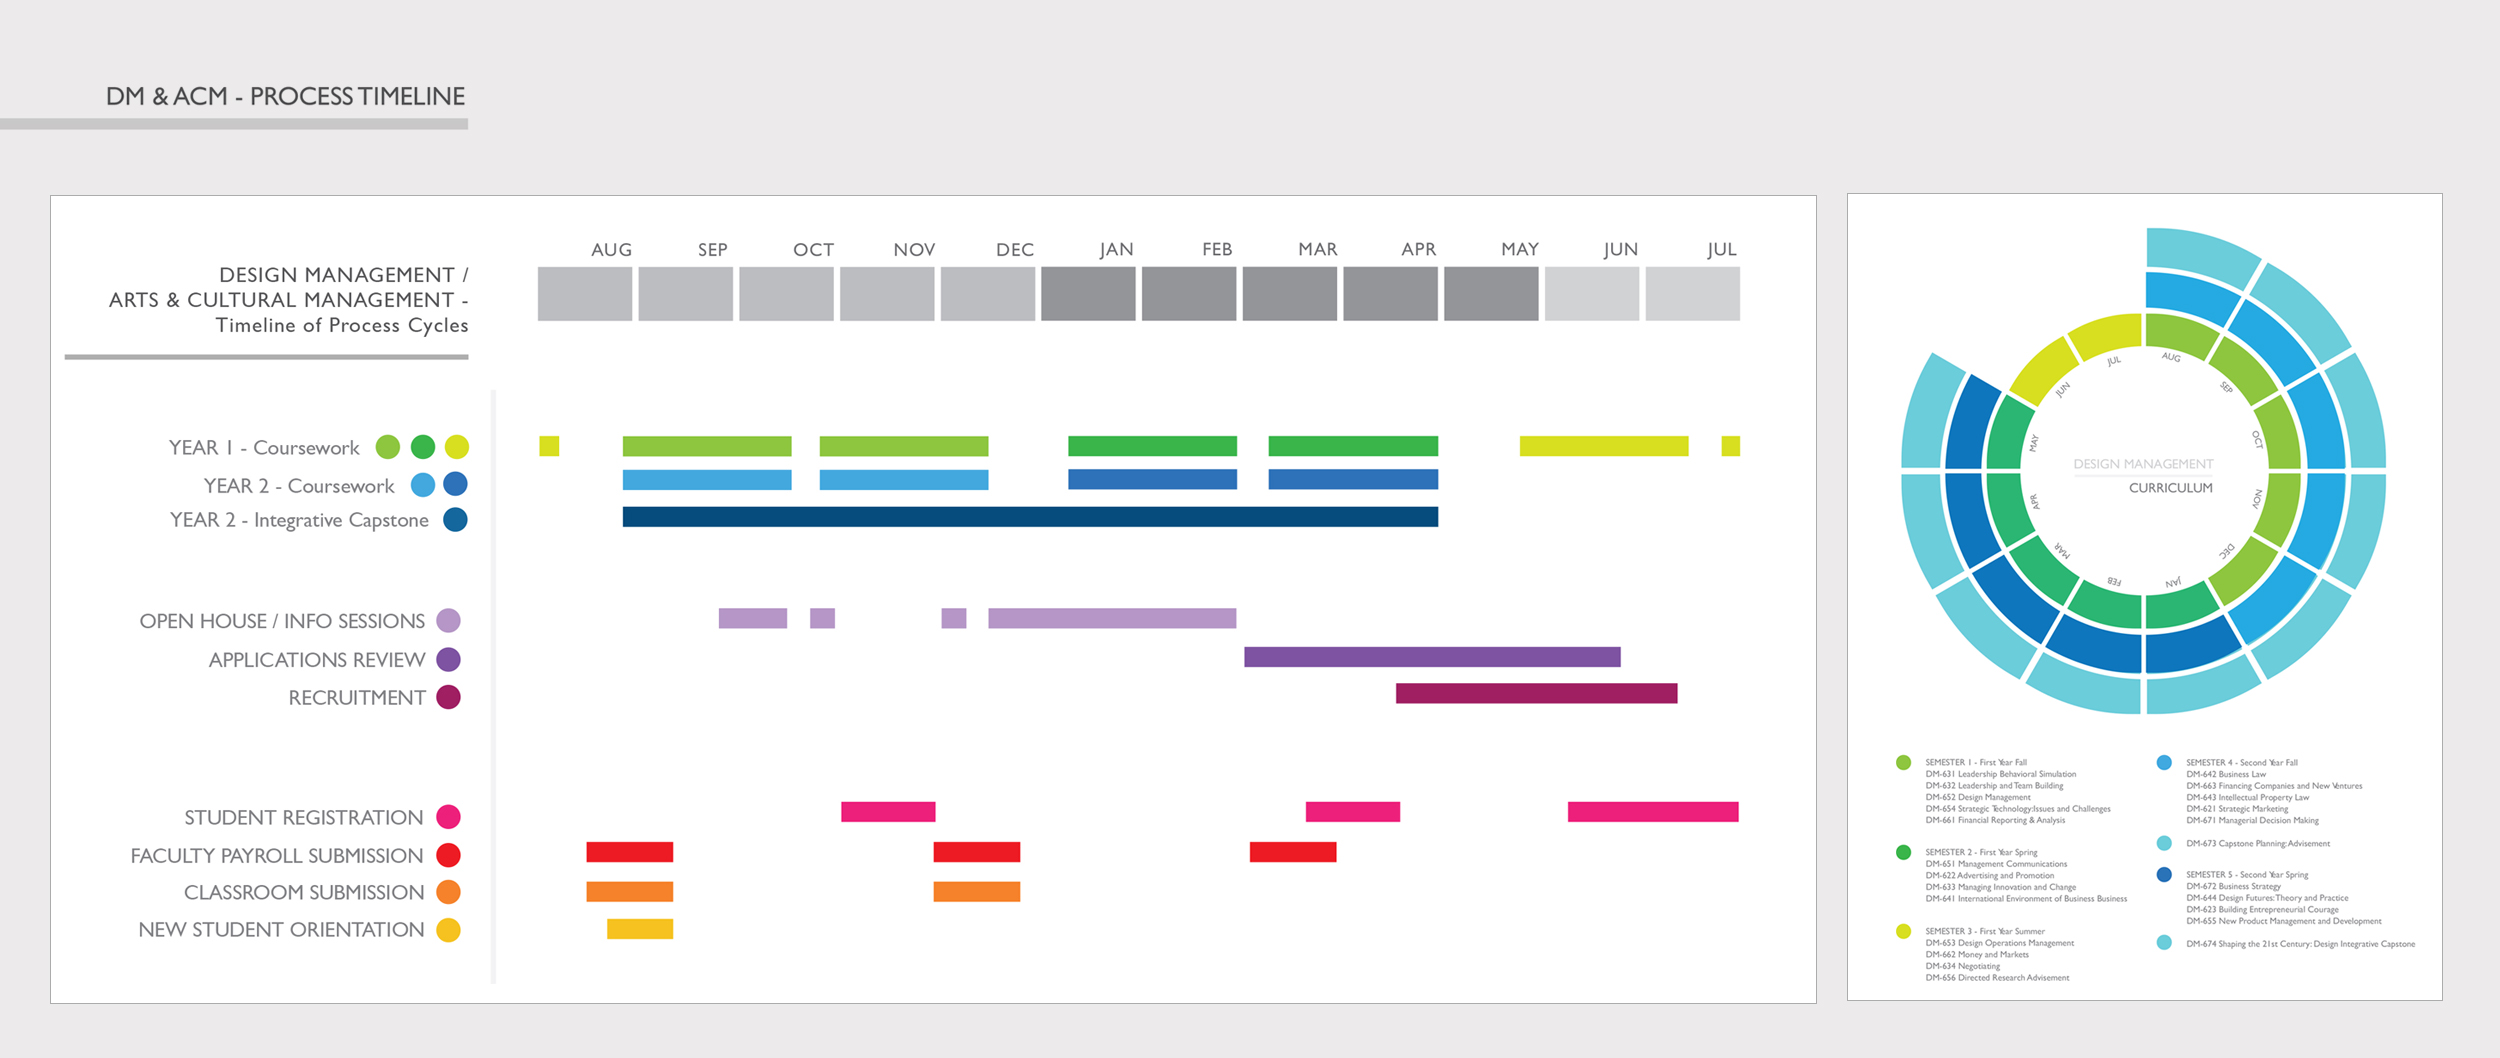 The final office timeline chart is a combination of the two charts directly above. On the left is the timeline for academic year and processes within the department and the larger Institute. At right, the Curriculum calendar (and coursework building on itself).